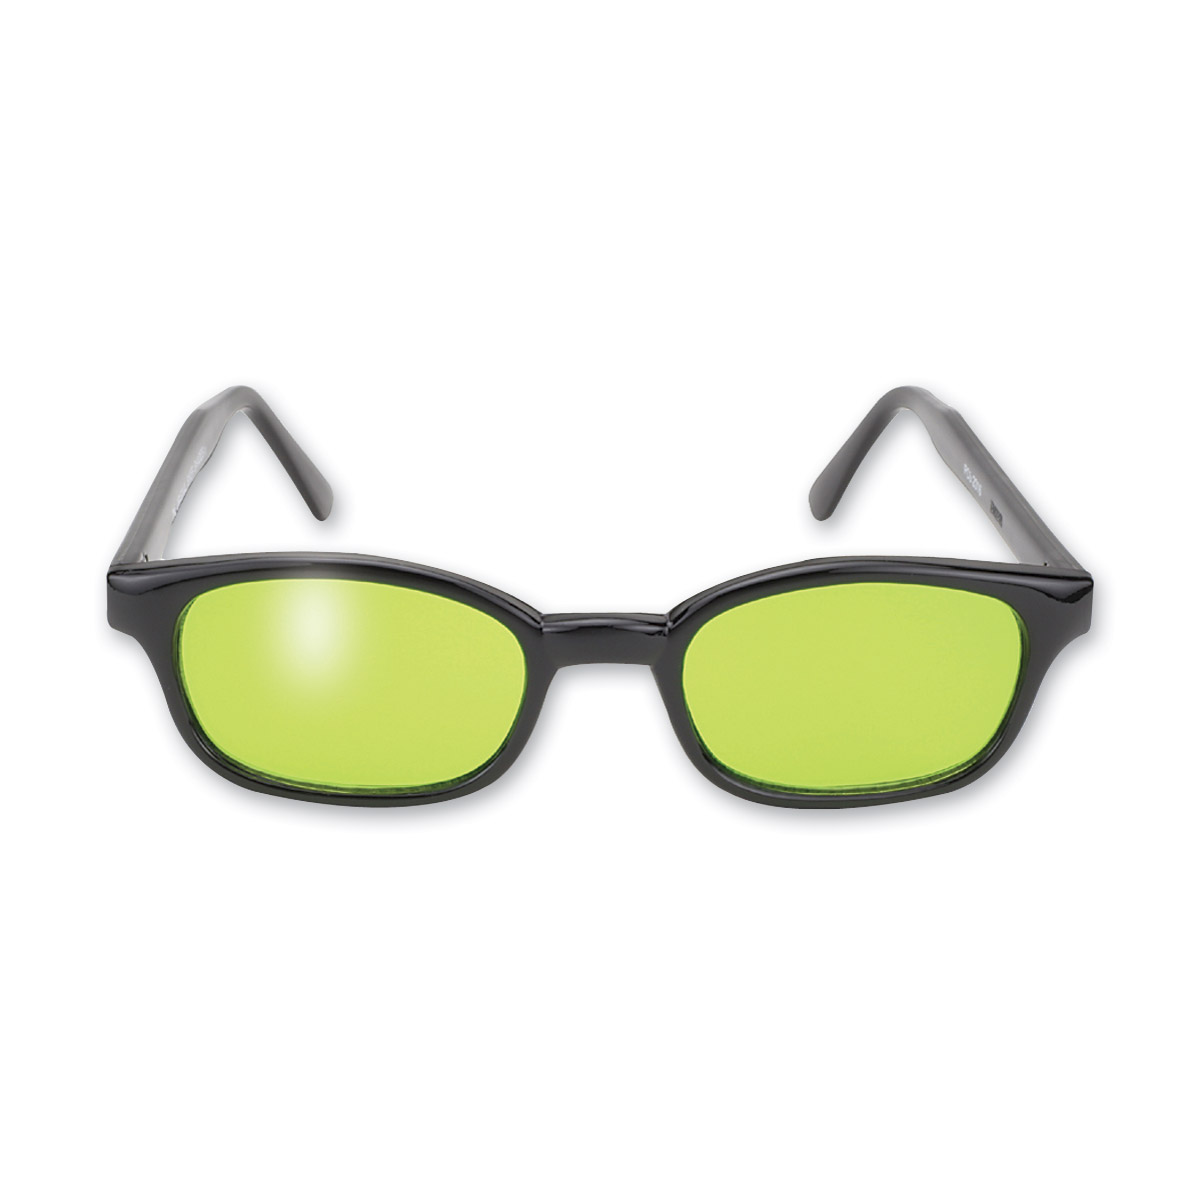 KD's Sunglasses - Black Frame with Green Lens